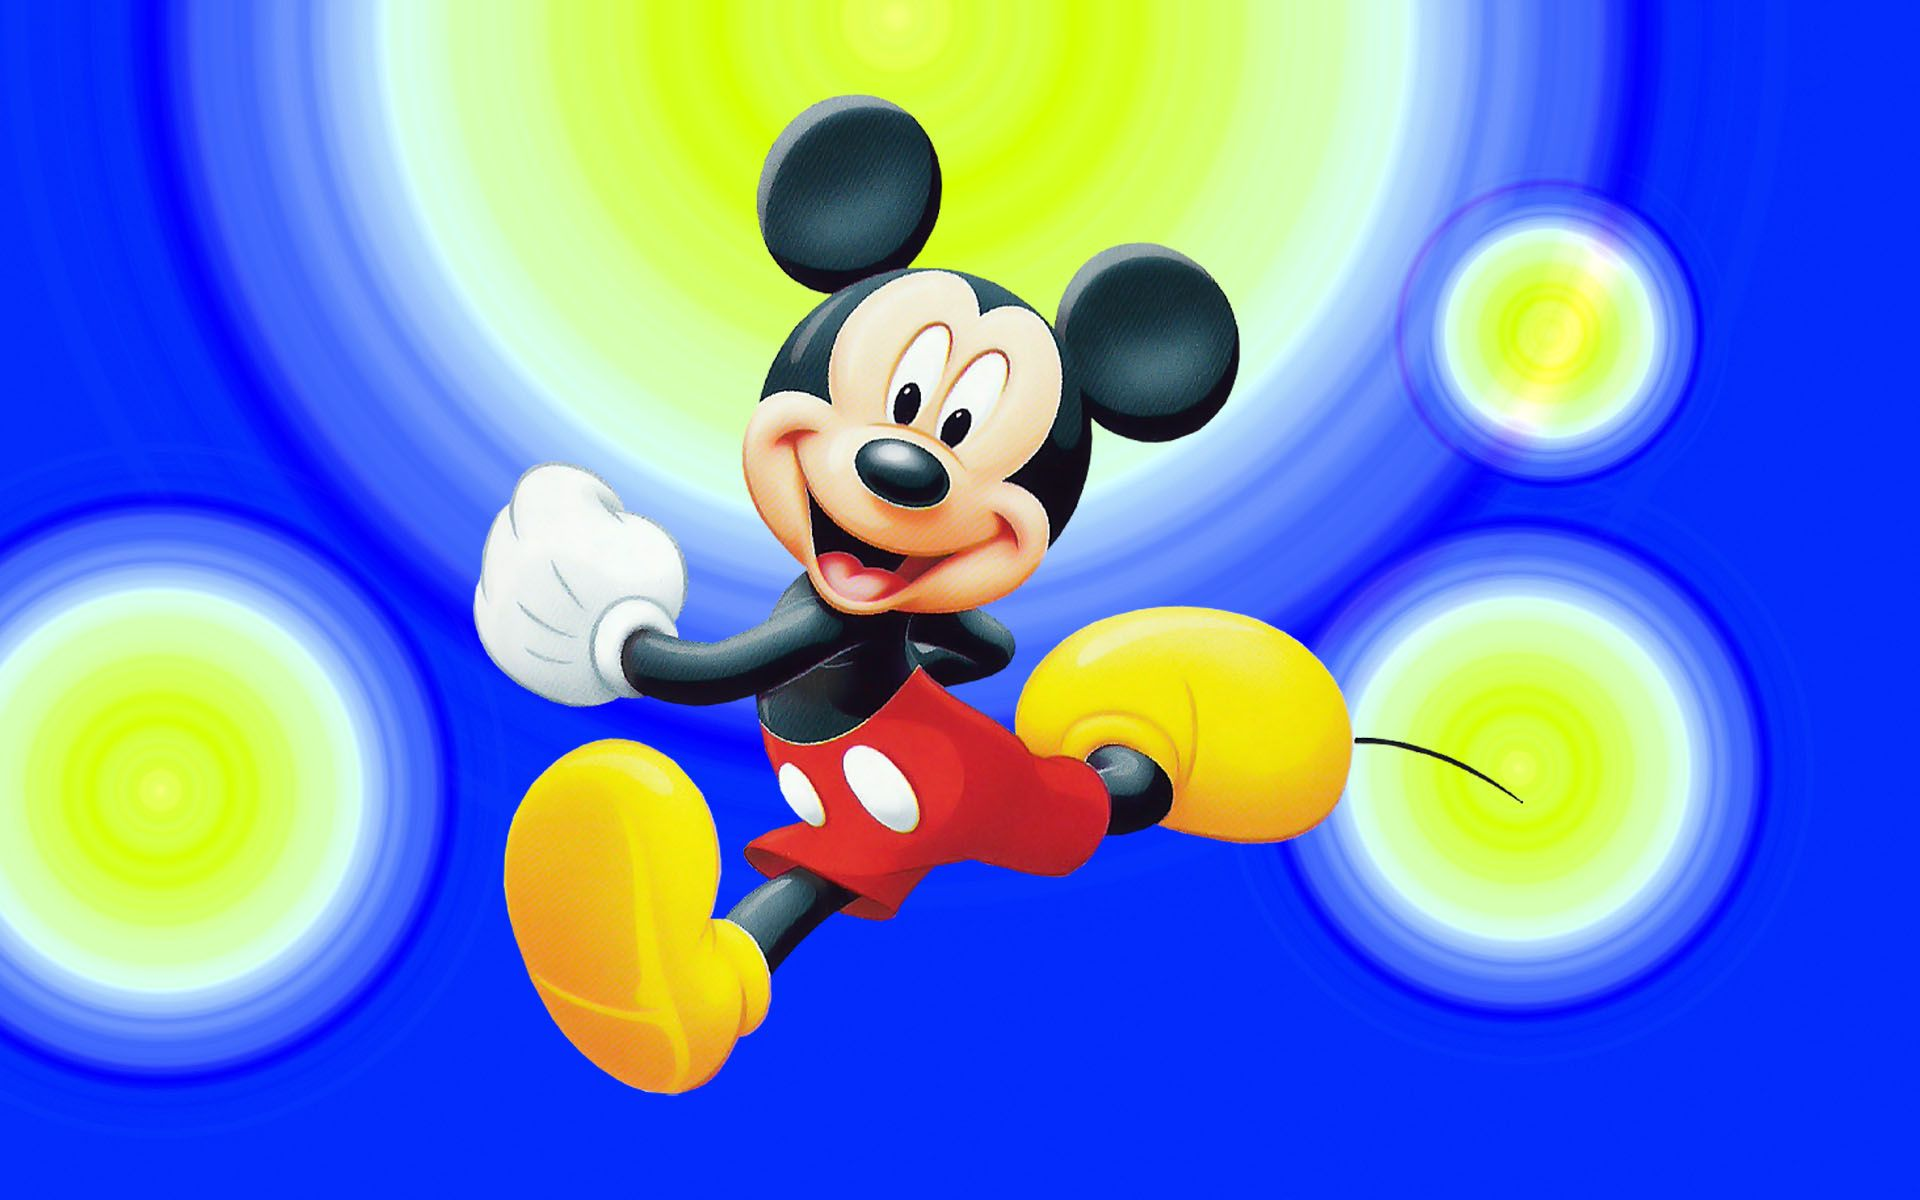 mickey mouse desktop backgrounds